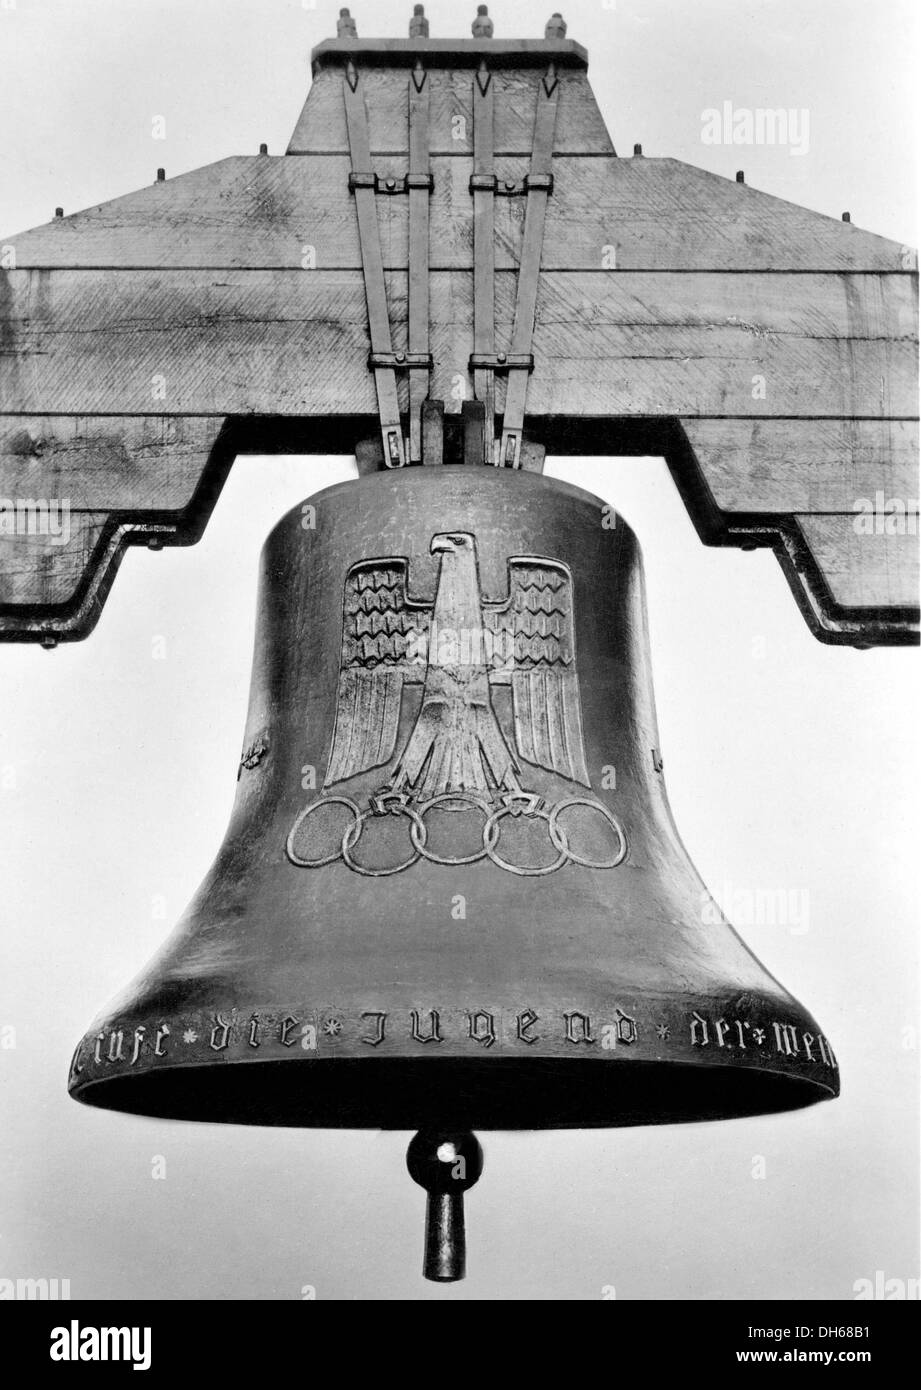 Bell at Olympic Stadium, historical image, 1936 Olympic Games, Berlin, Germany - Stock Image